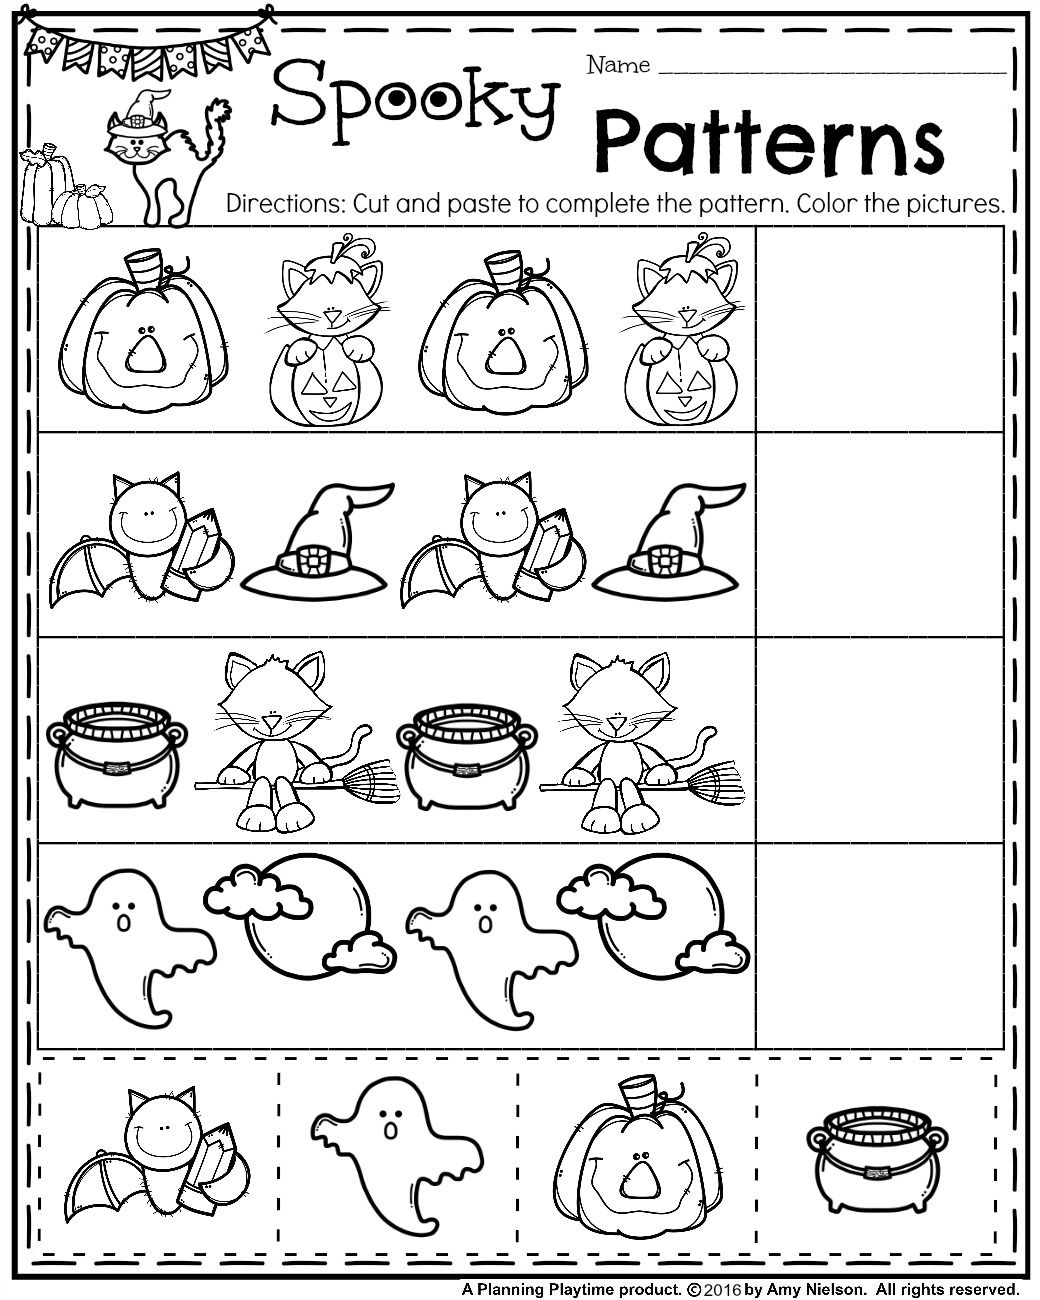 october preschool worksheets preschool activities preschool worksheets halloween worksheets. Black Bedroom Furniture Sets. Home Design Ideas